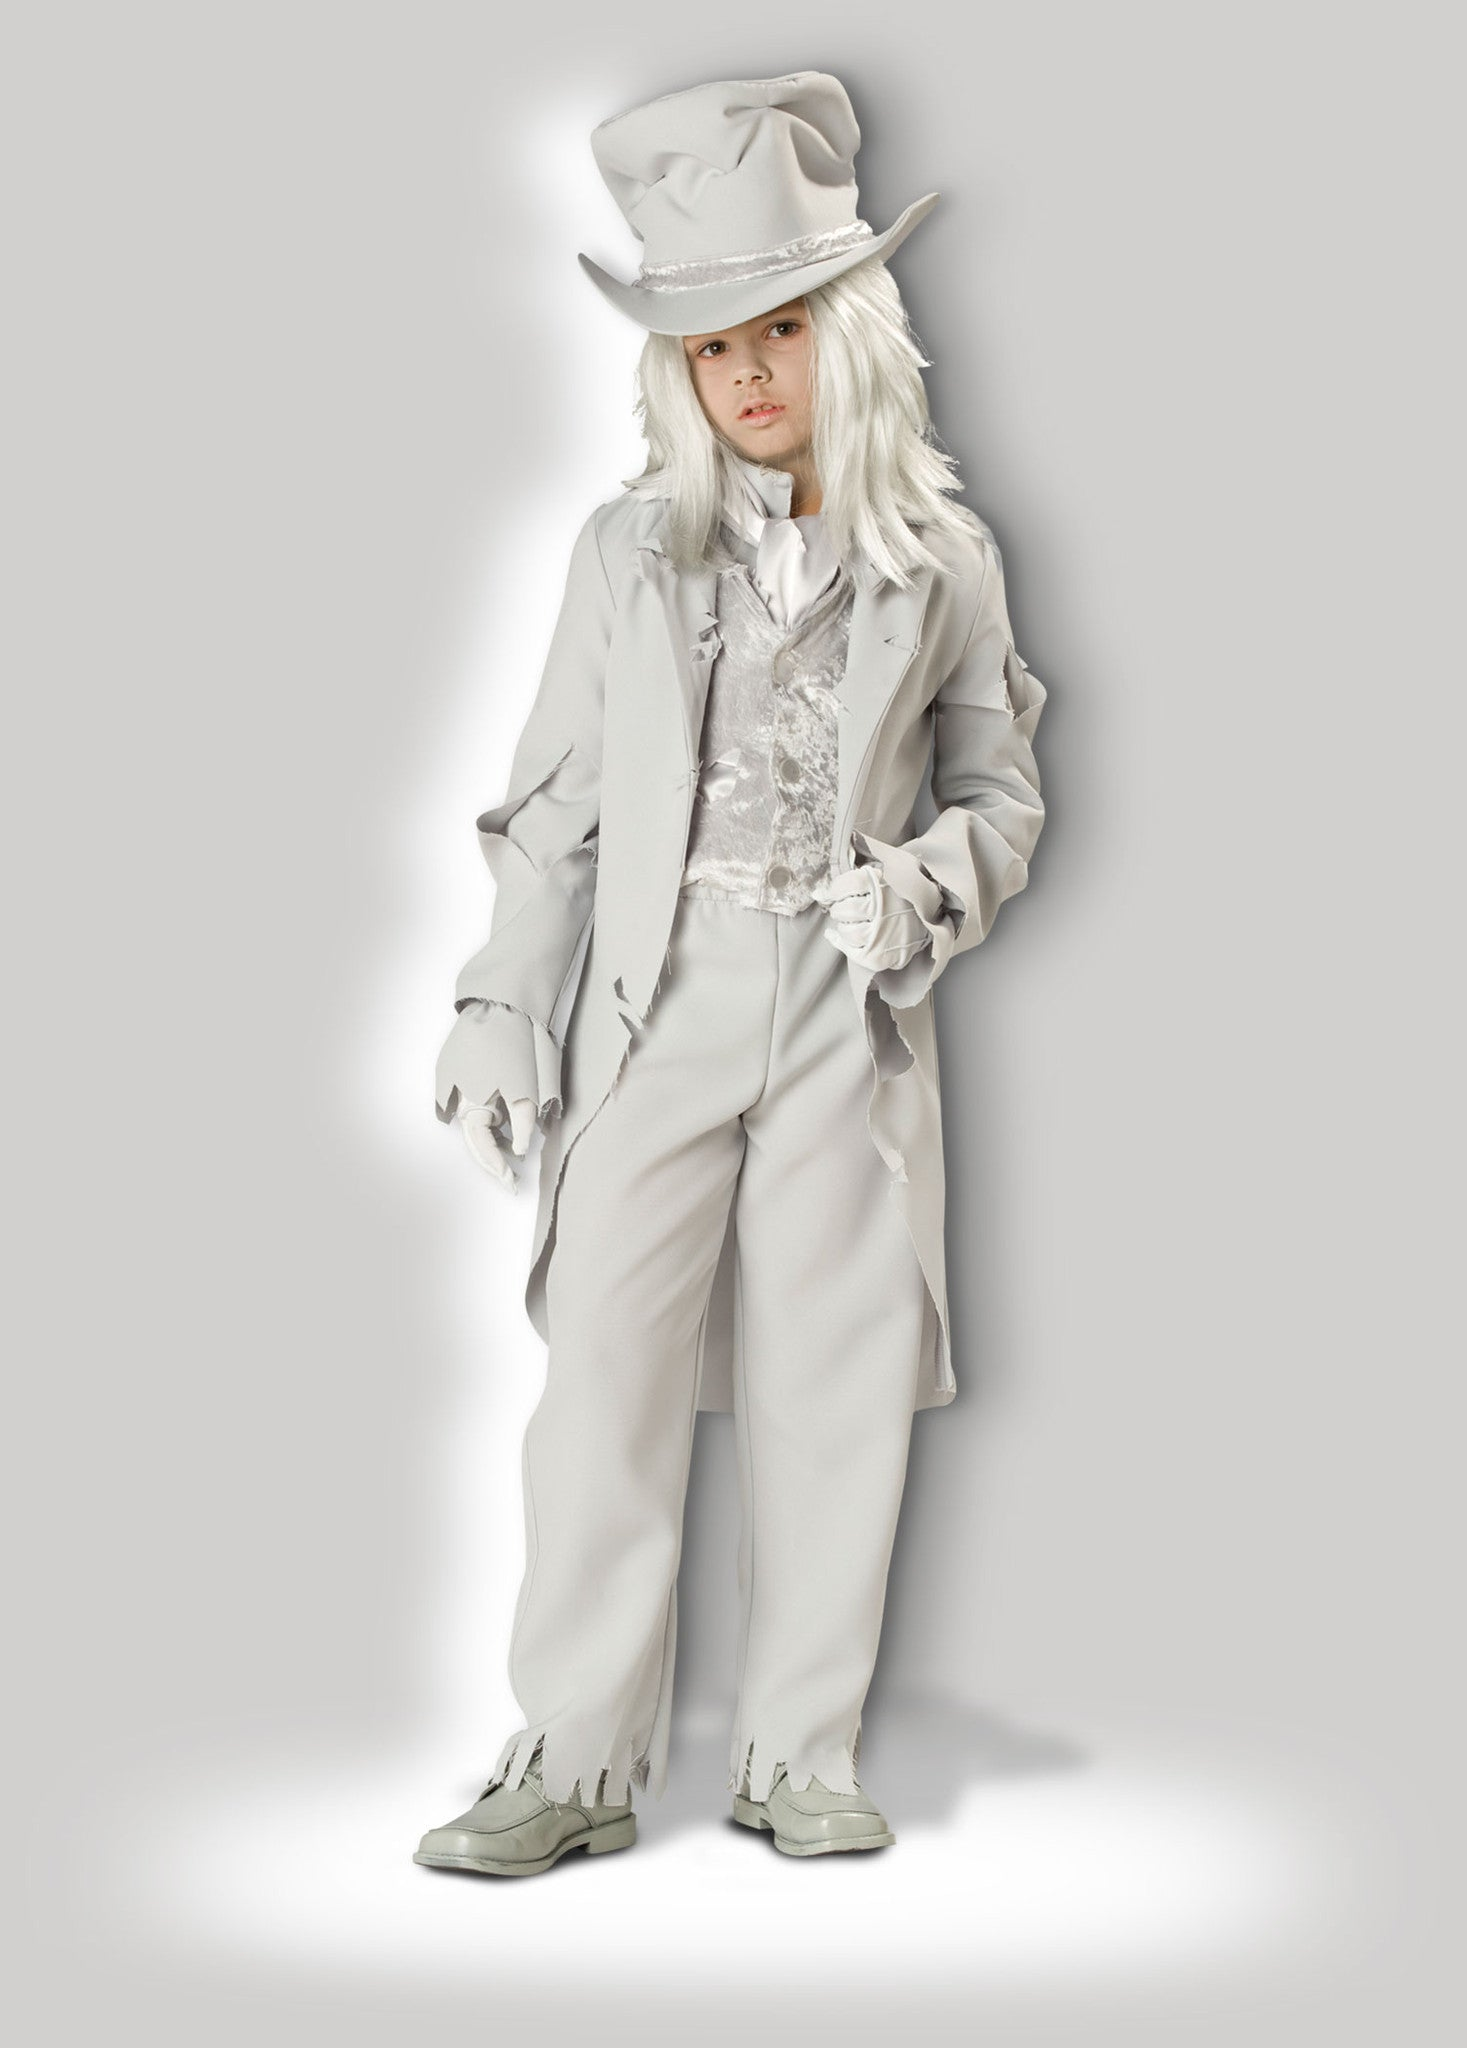 Ghostly Gent CB7023  sc 1 st  InCharacter Costumes & Deluxe Child Ghost Costume u2013 InCharacter Costumes